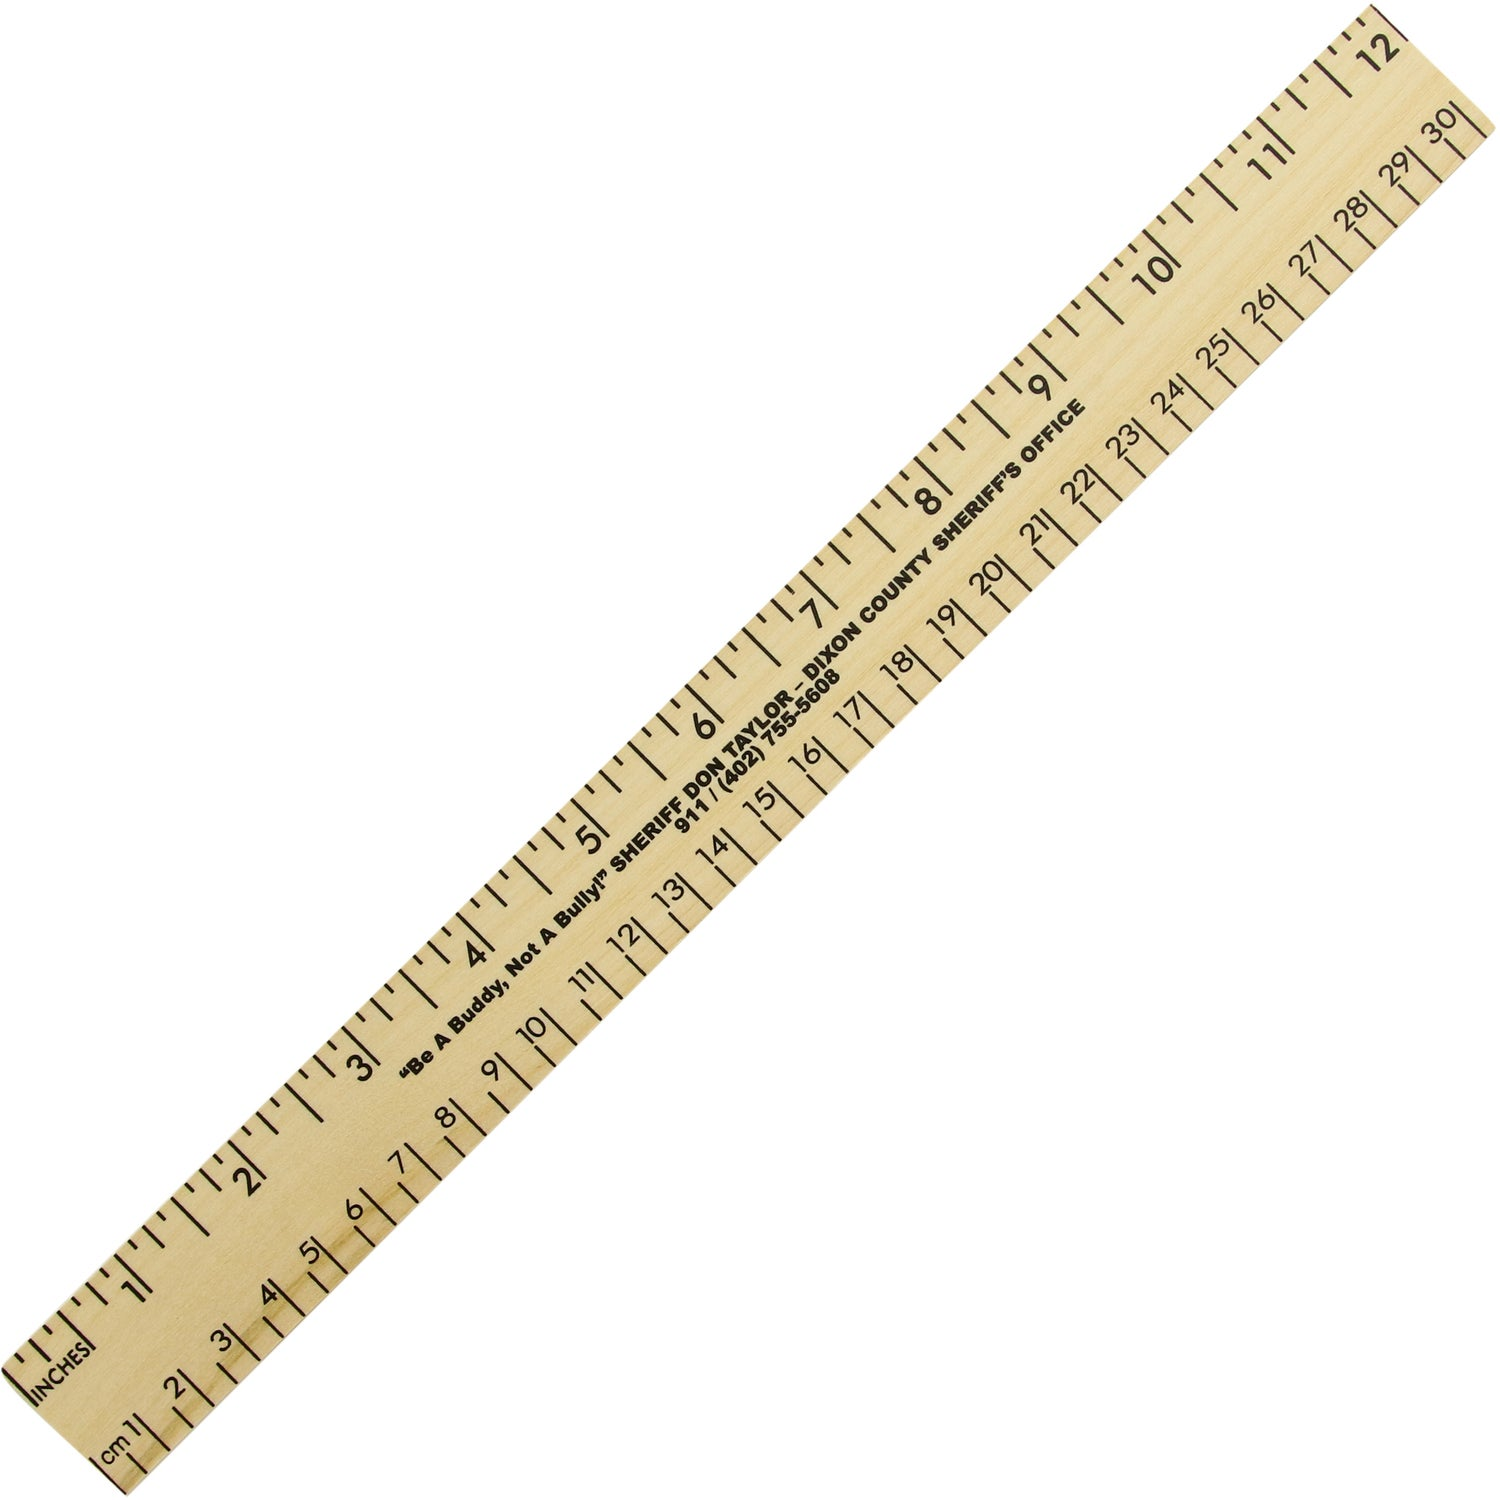 12 Clear Lacquer Wood Ruler